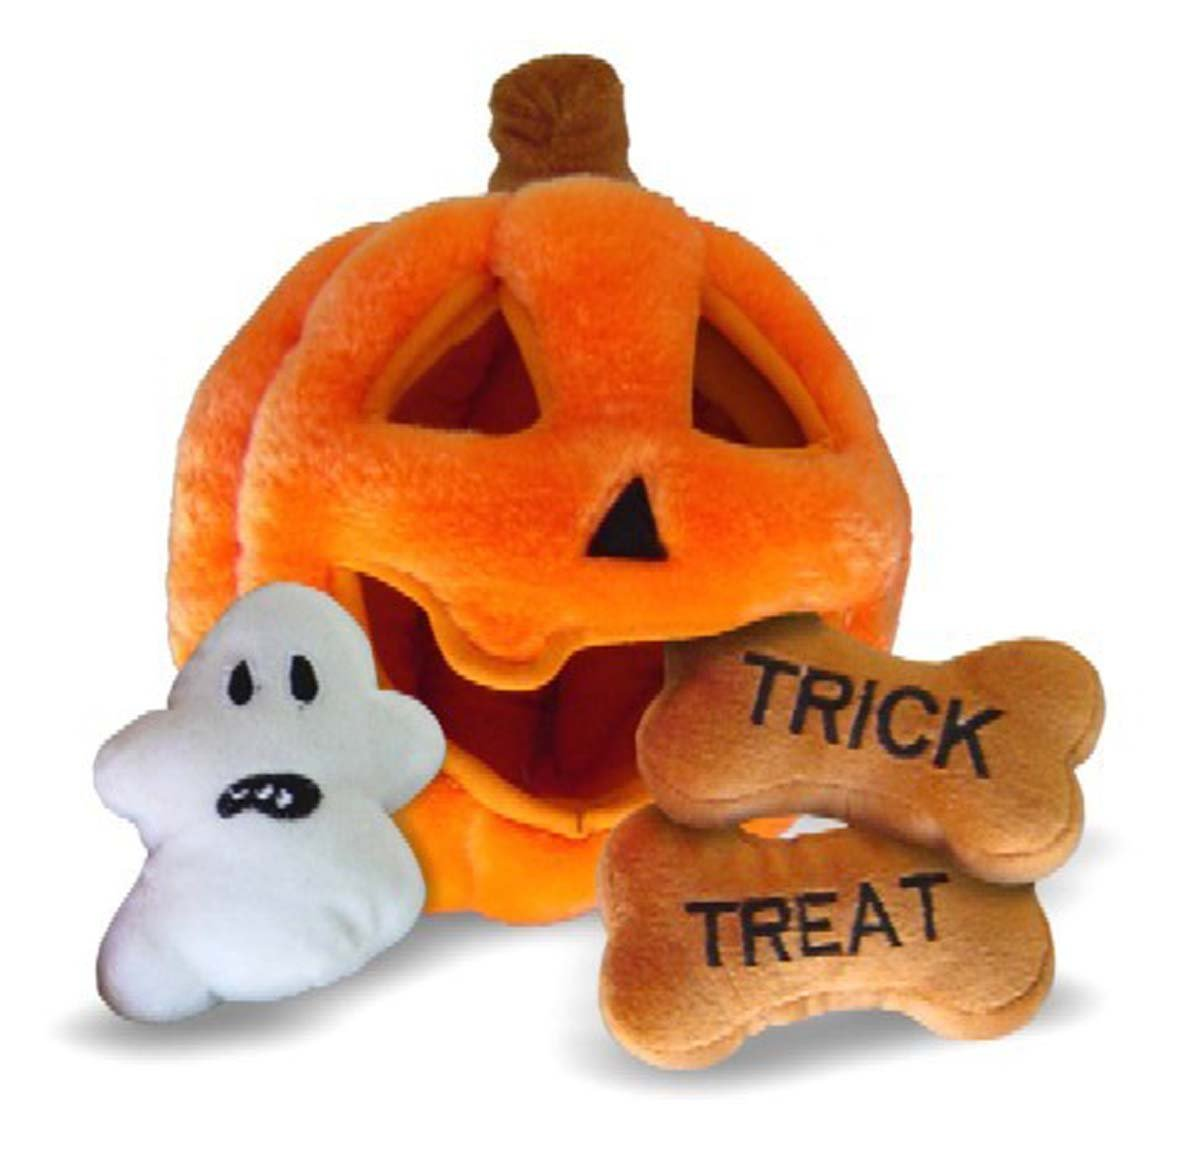 Toys For Halloween : These fun halloween toys for dogs are such a treat dogvills